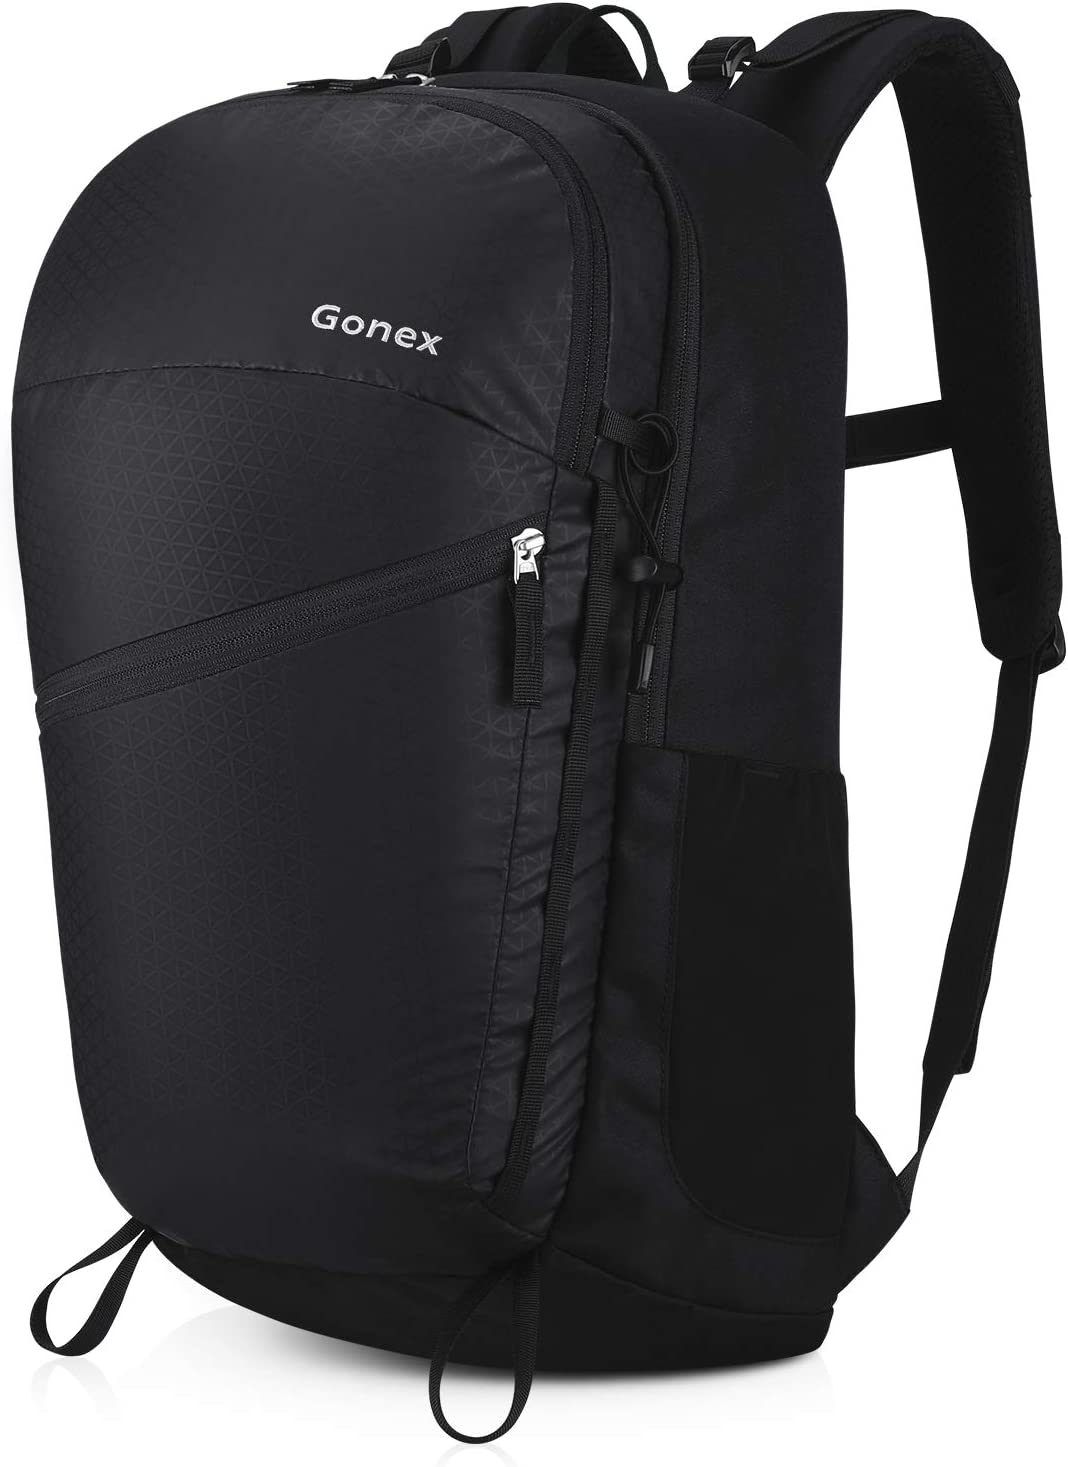 Gonex Travel Laptop Backpack 14inch, 35L Commuter Backpack Daypack for Office, School, Outdoor Activities Black